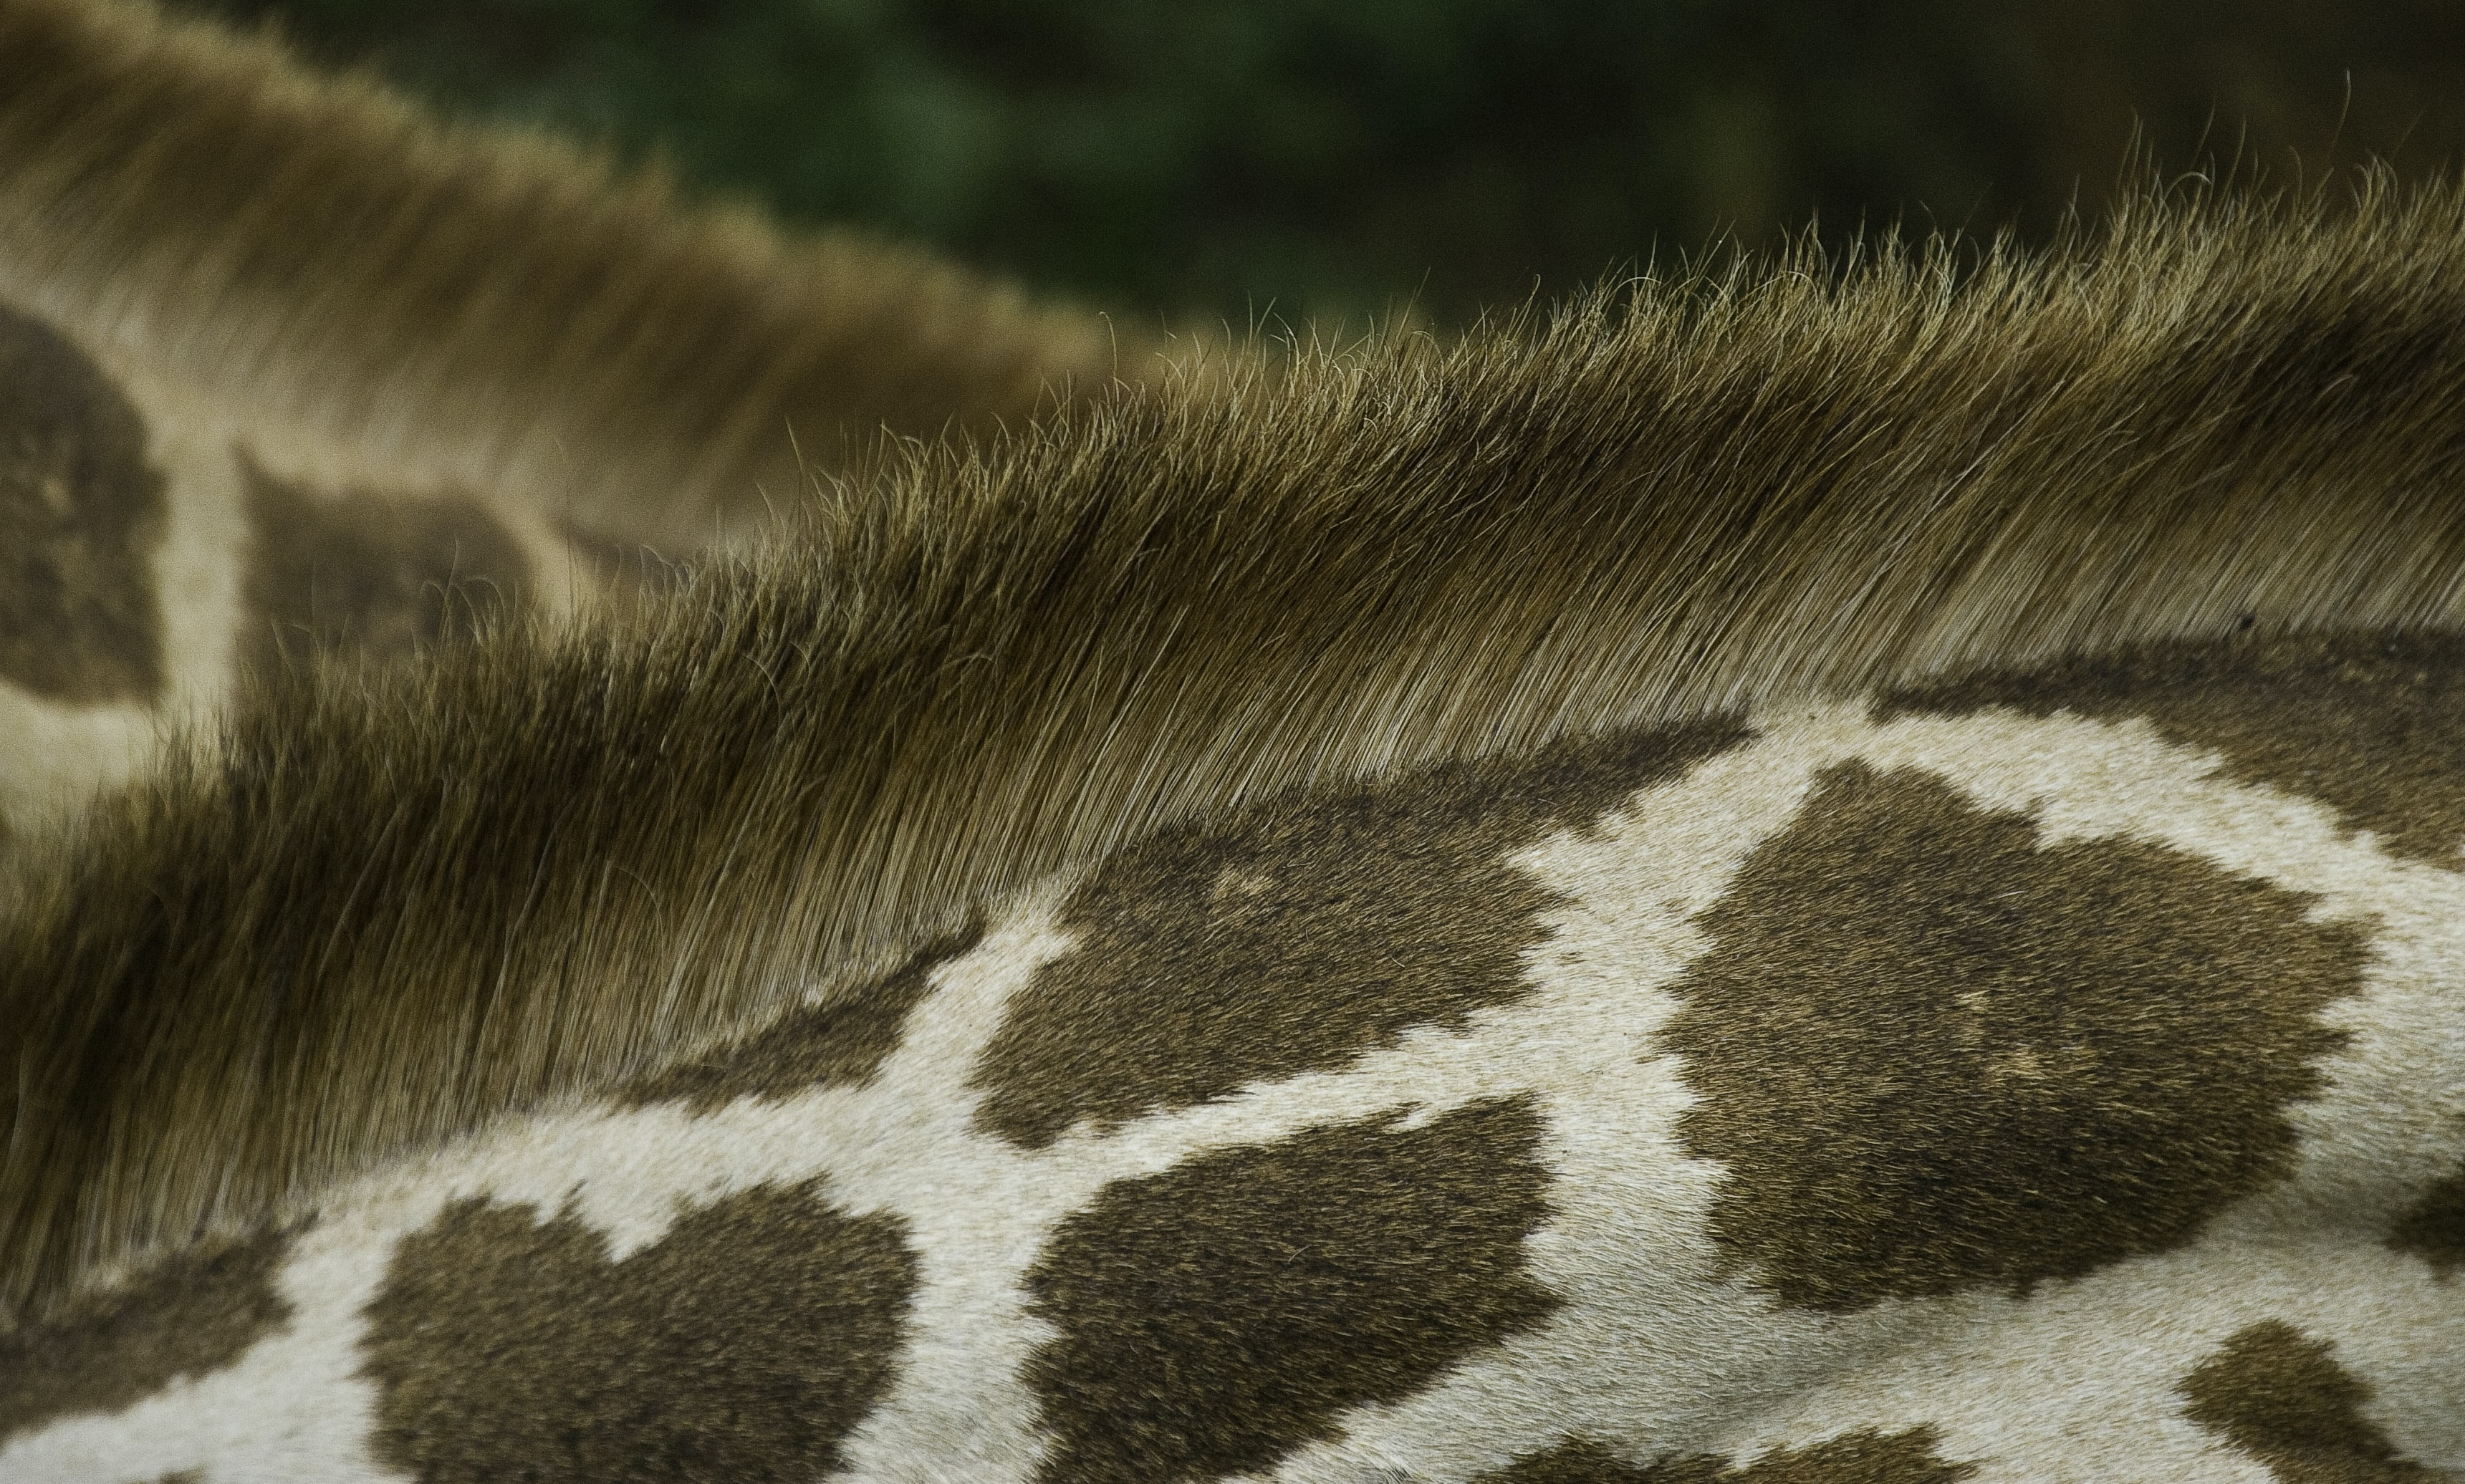 closeup photo of giraffe's back